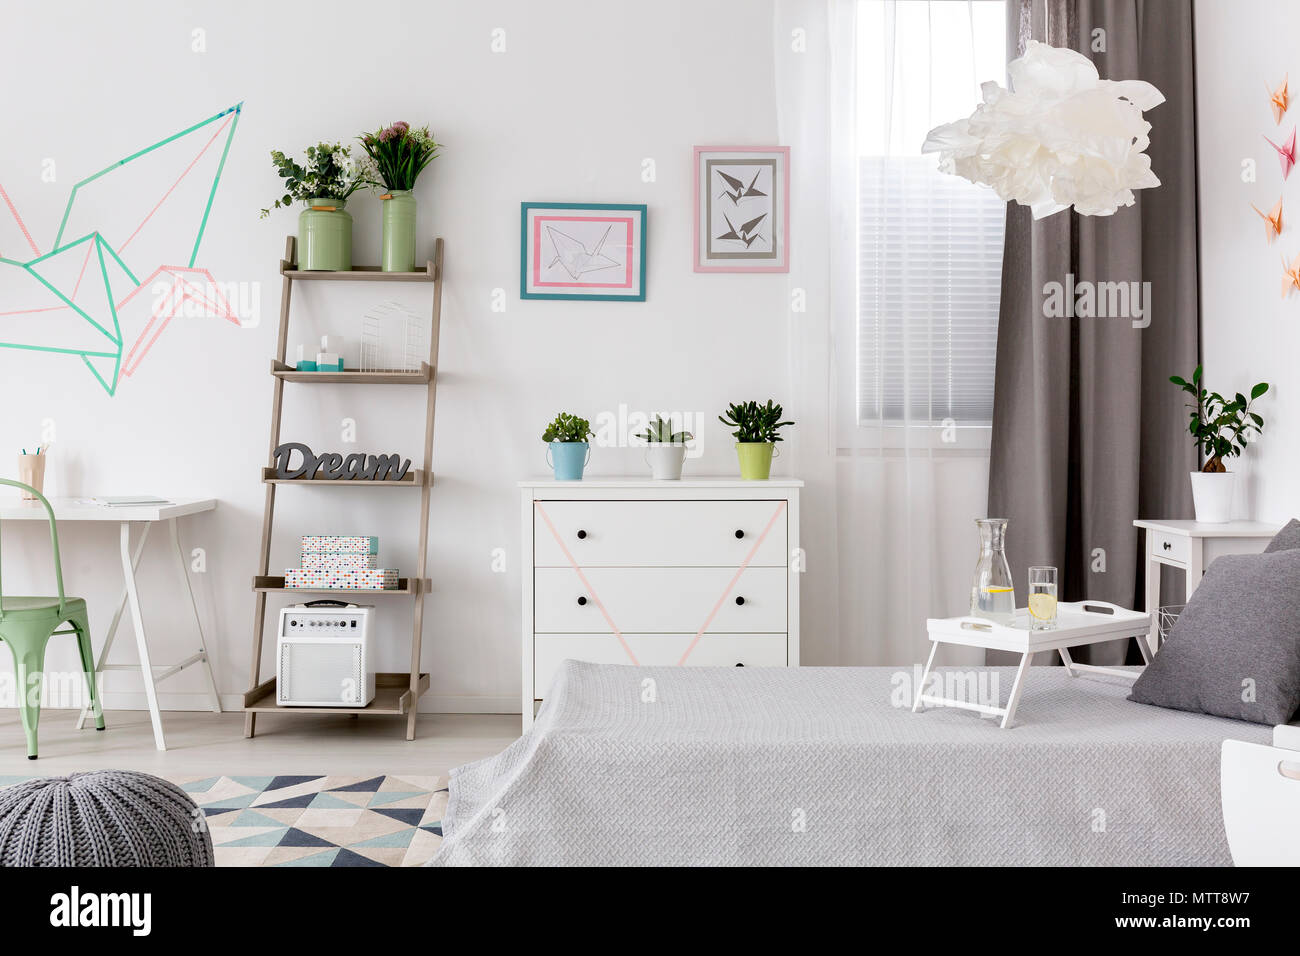 Light bedroom and office combined and creative wall decor - Stock Image